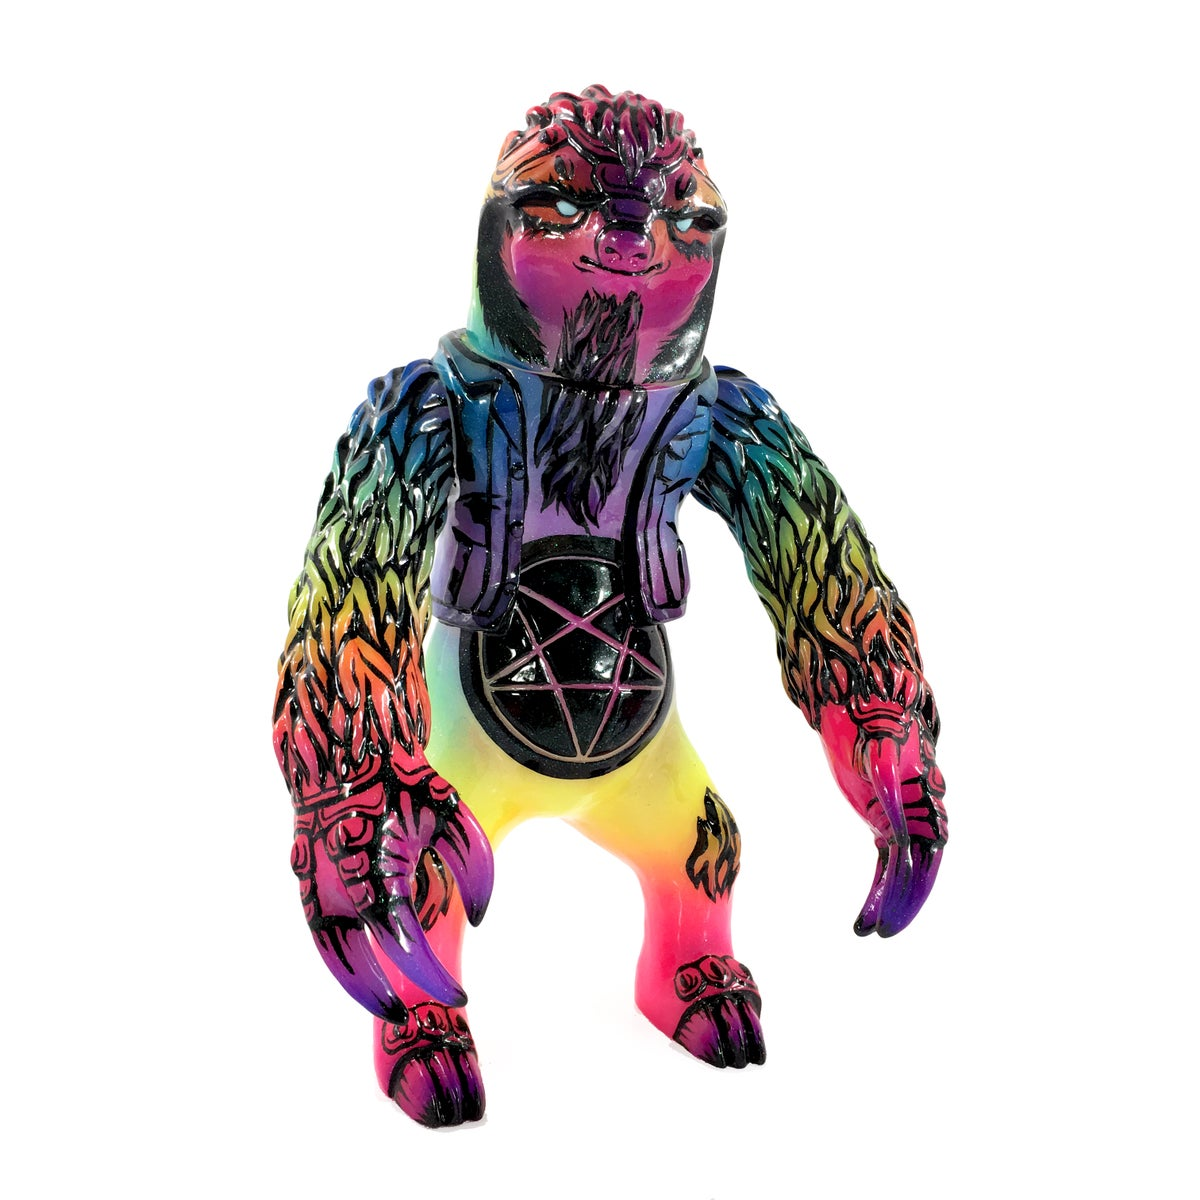 Image of Metal Sloth